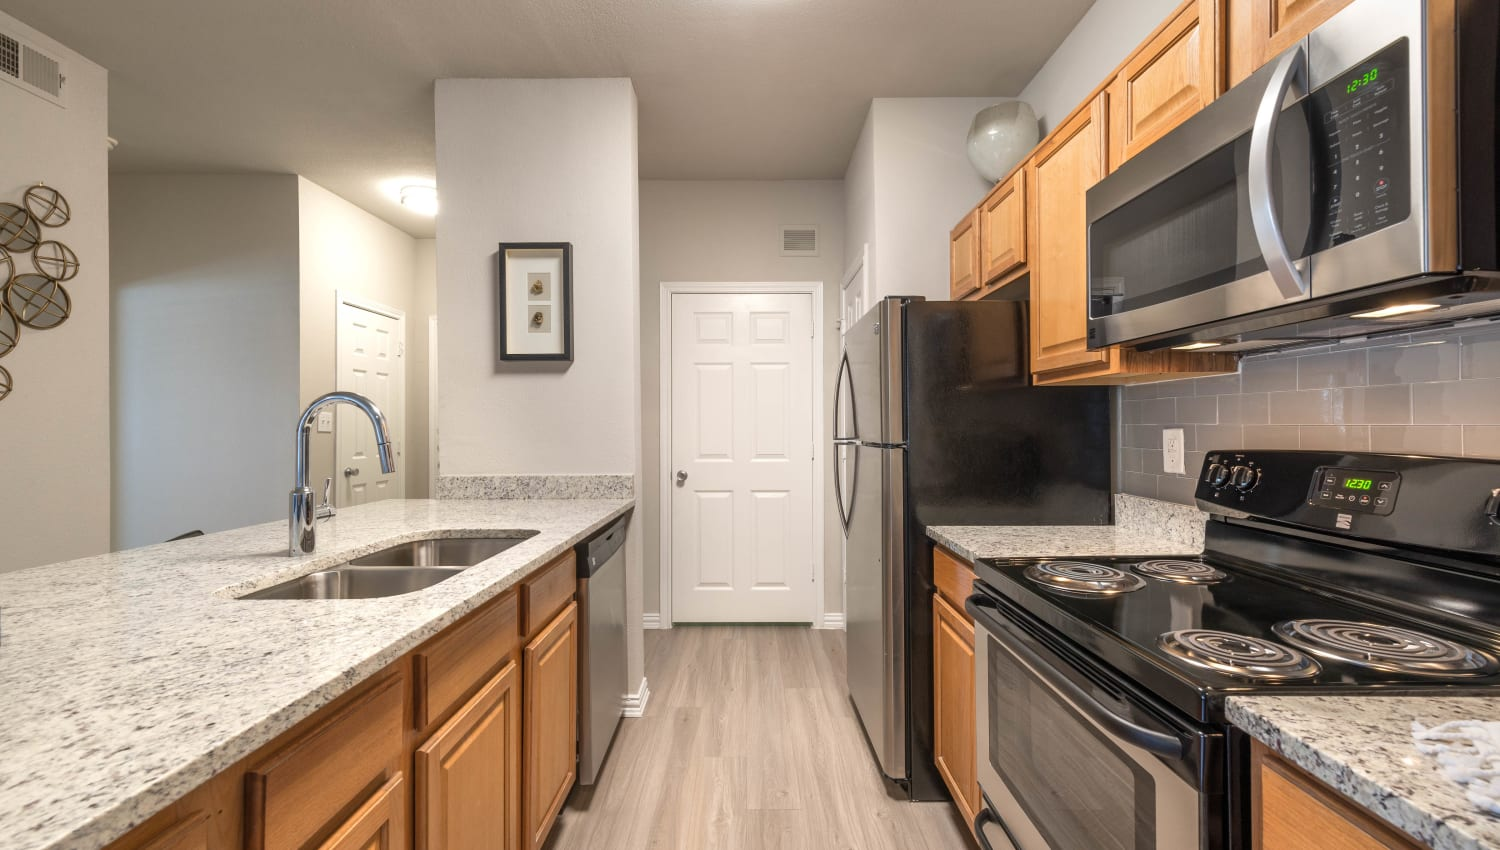 Hardwood flooring, black and stainless-steel appliances, and a pantry in a model apartment's kitchen at Olympus Stone Glen in Keller, Texas